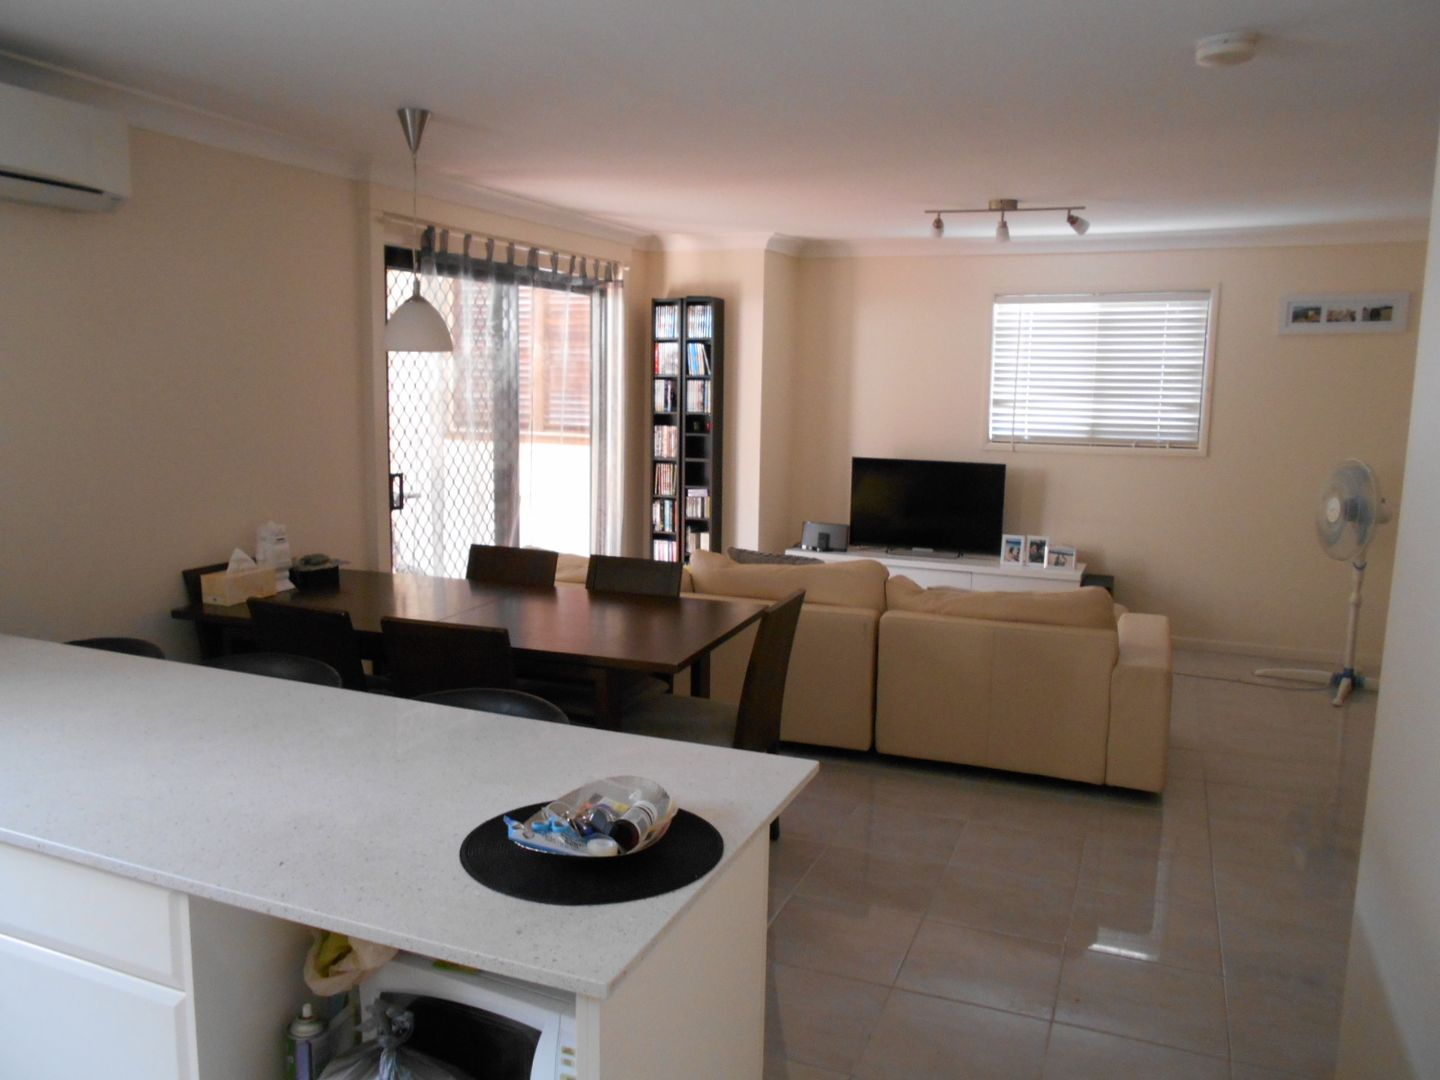 57 Coonan St, Indooroopilly QLD 4068, Image 2